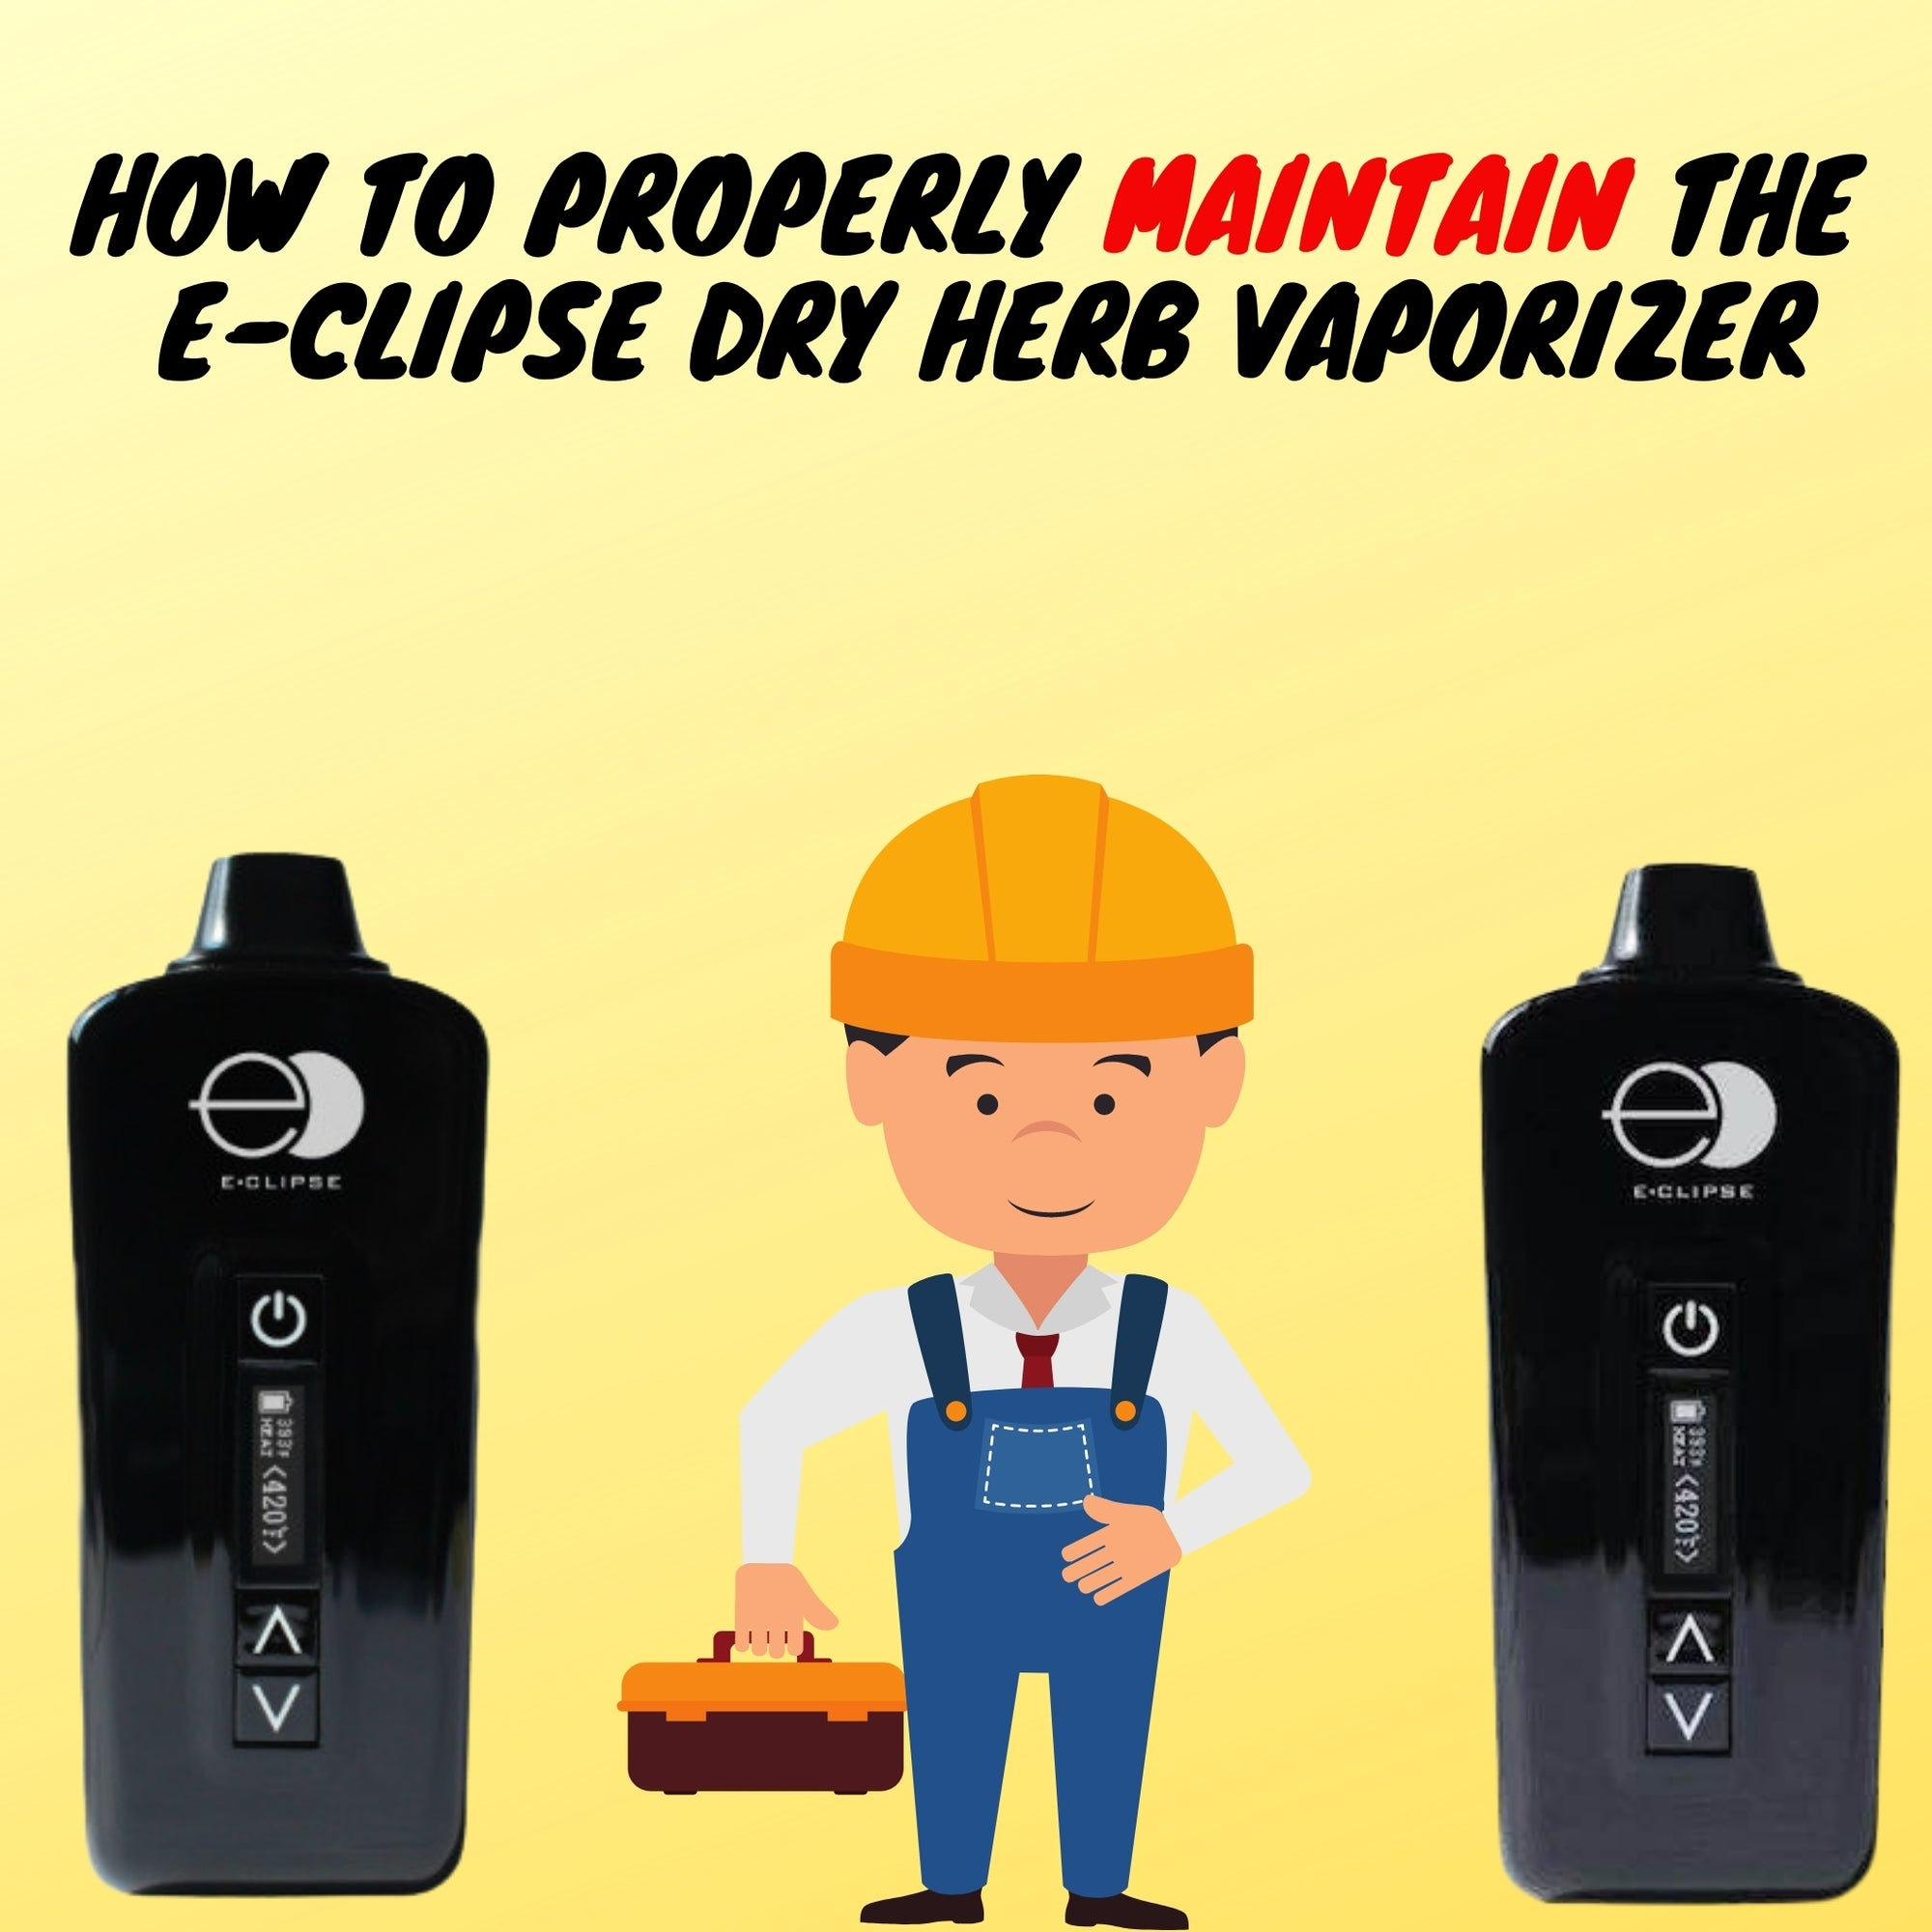 How to Properly Maintain the E-CLIPSE Dry Herb Vaporizer